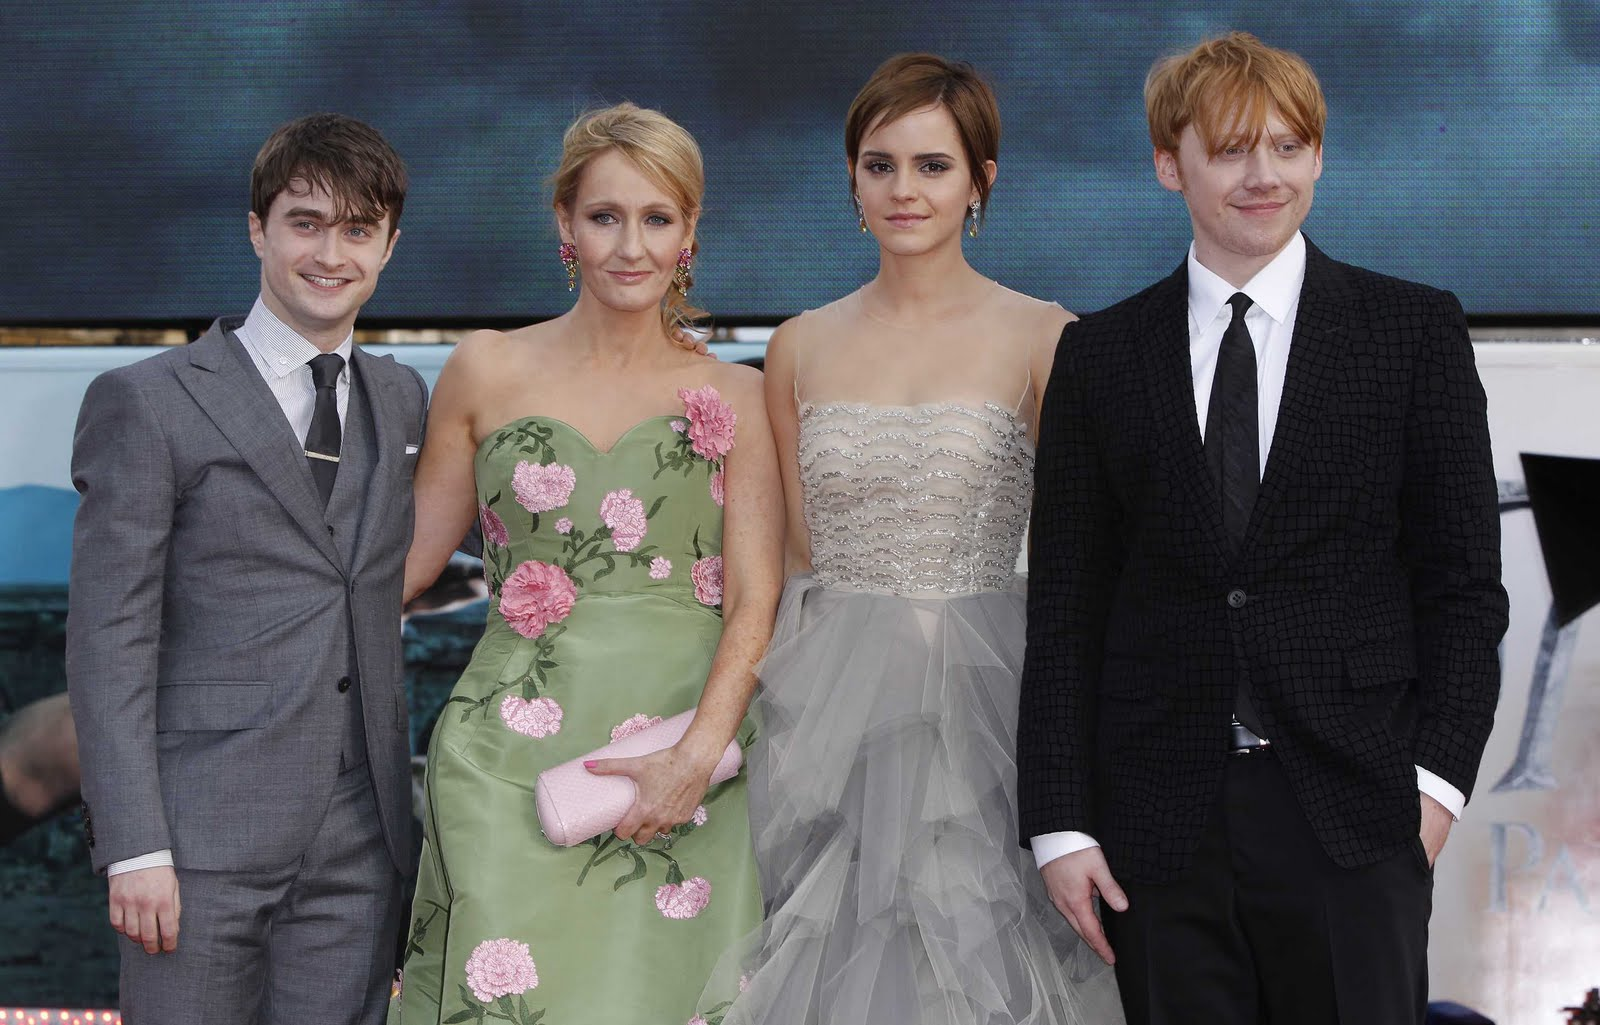 rowling-group